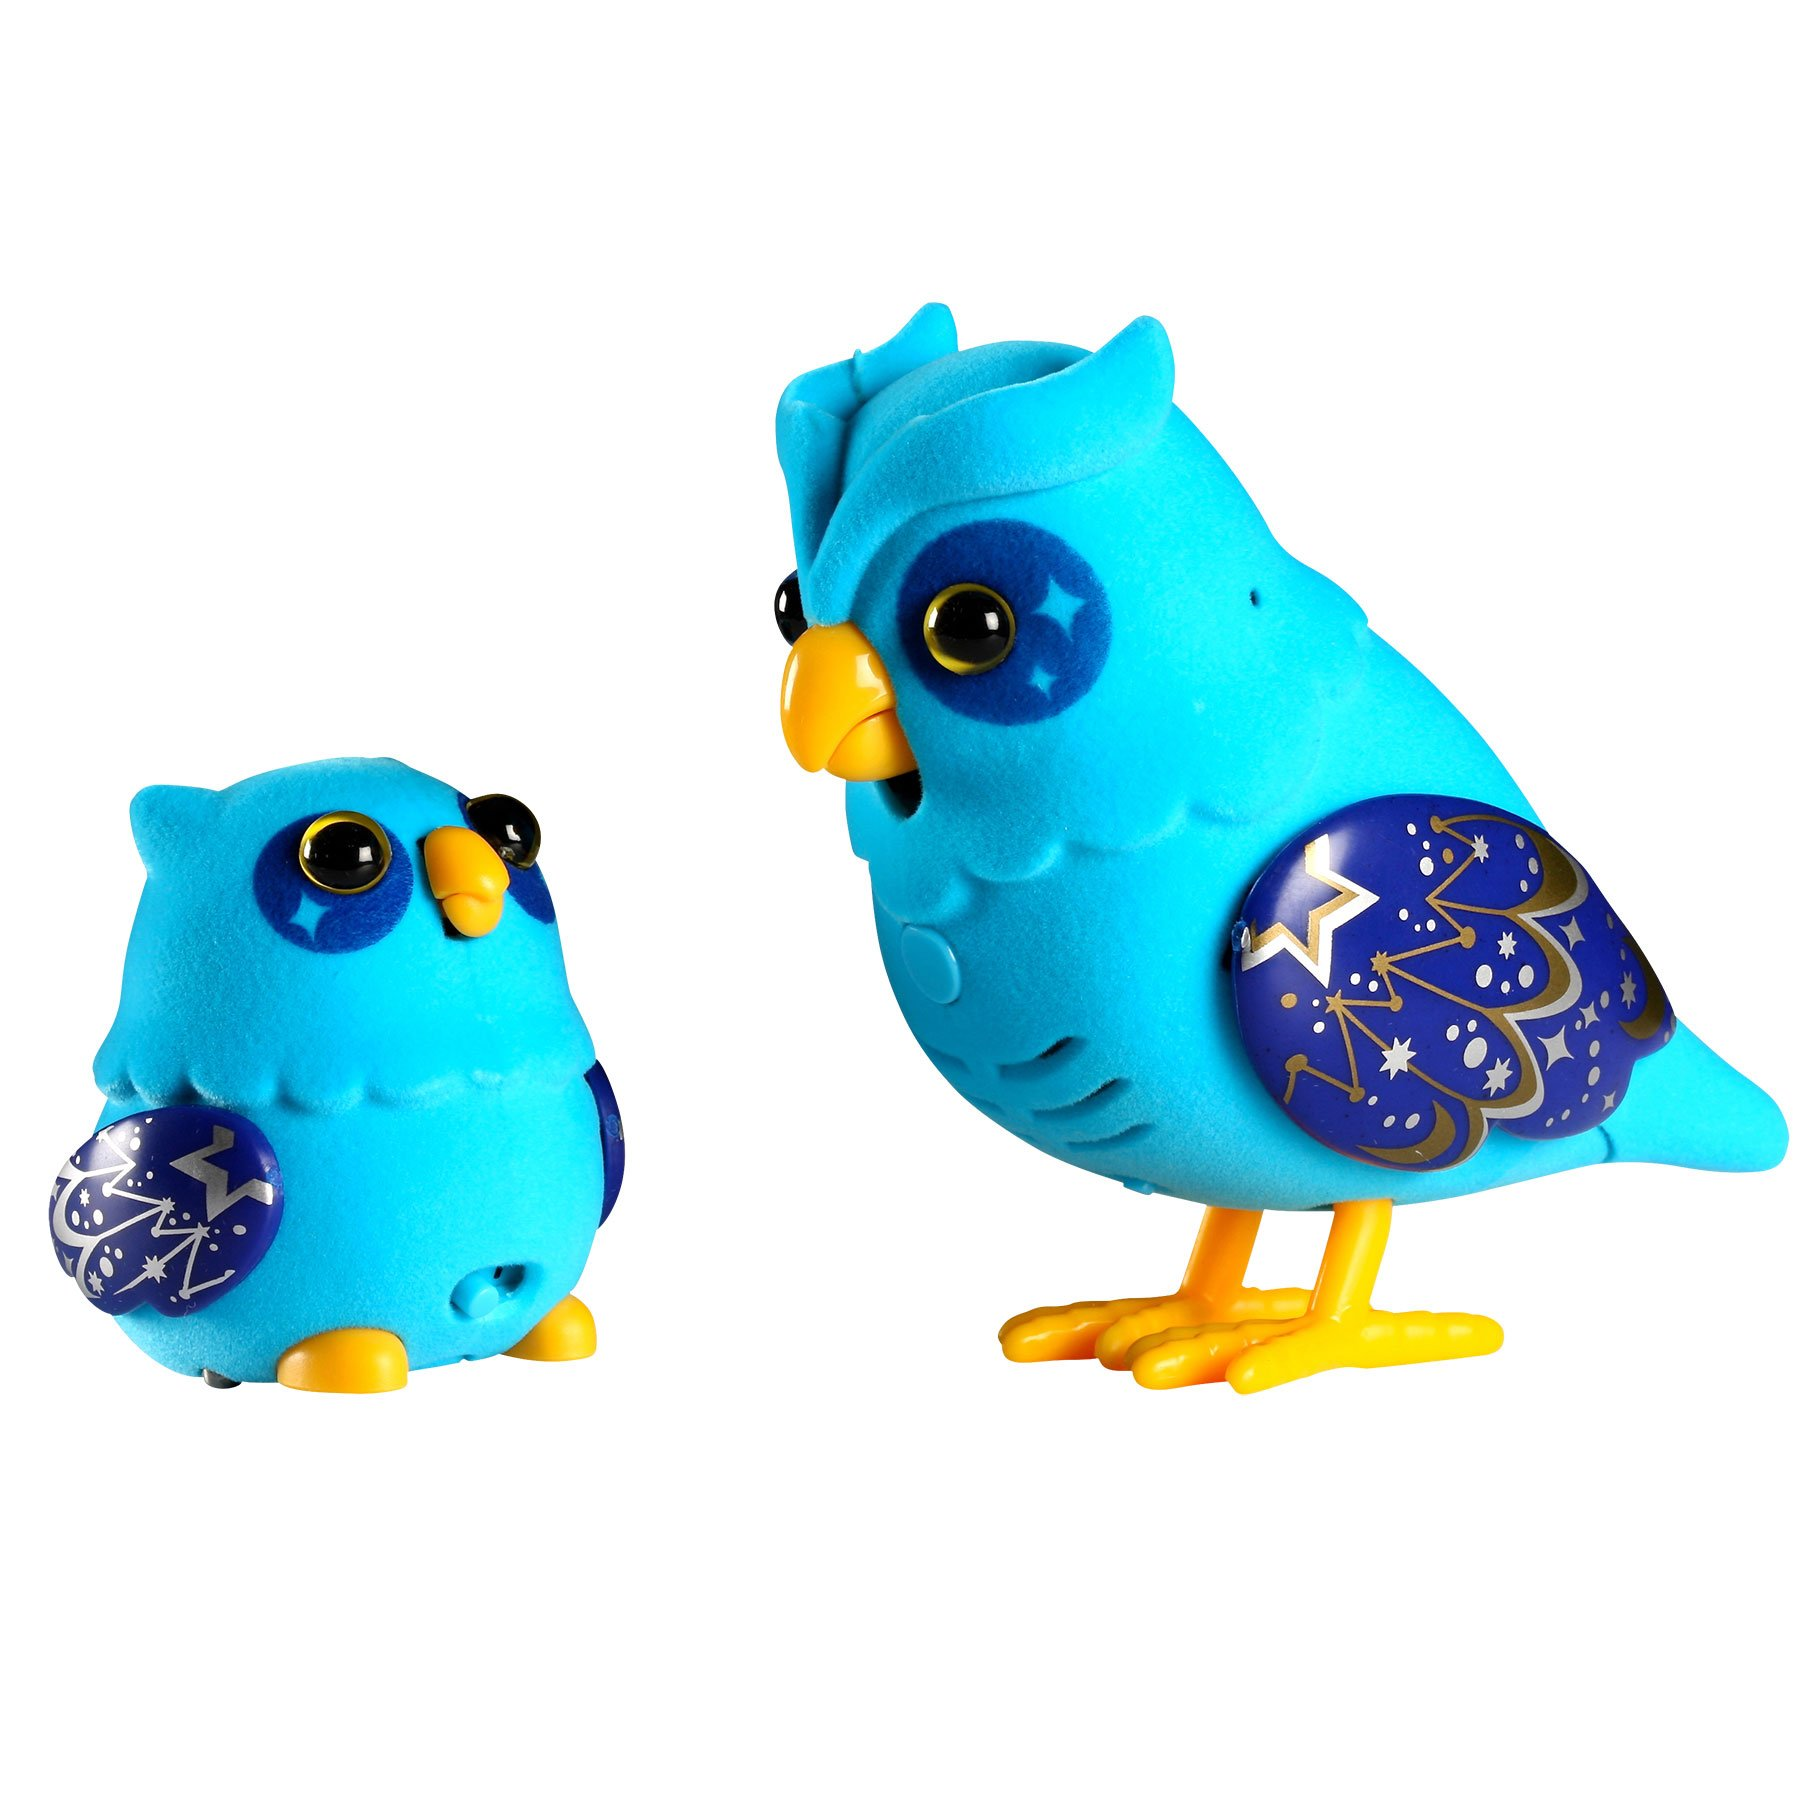 Little Live Pets S2 Tweet Talking Owl And Baby - Nightstar Family by Little Live Pets (Image #2)